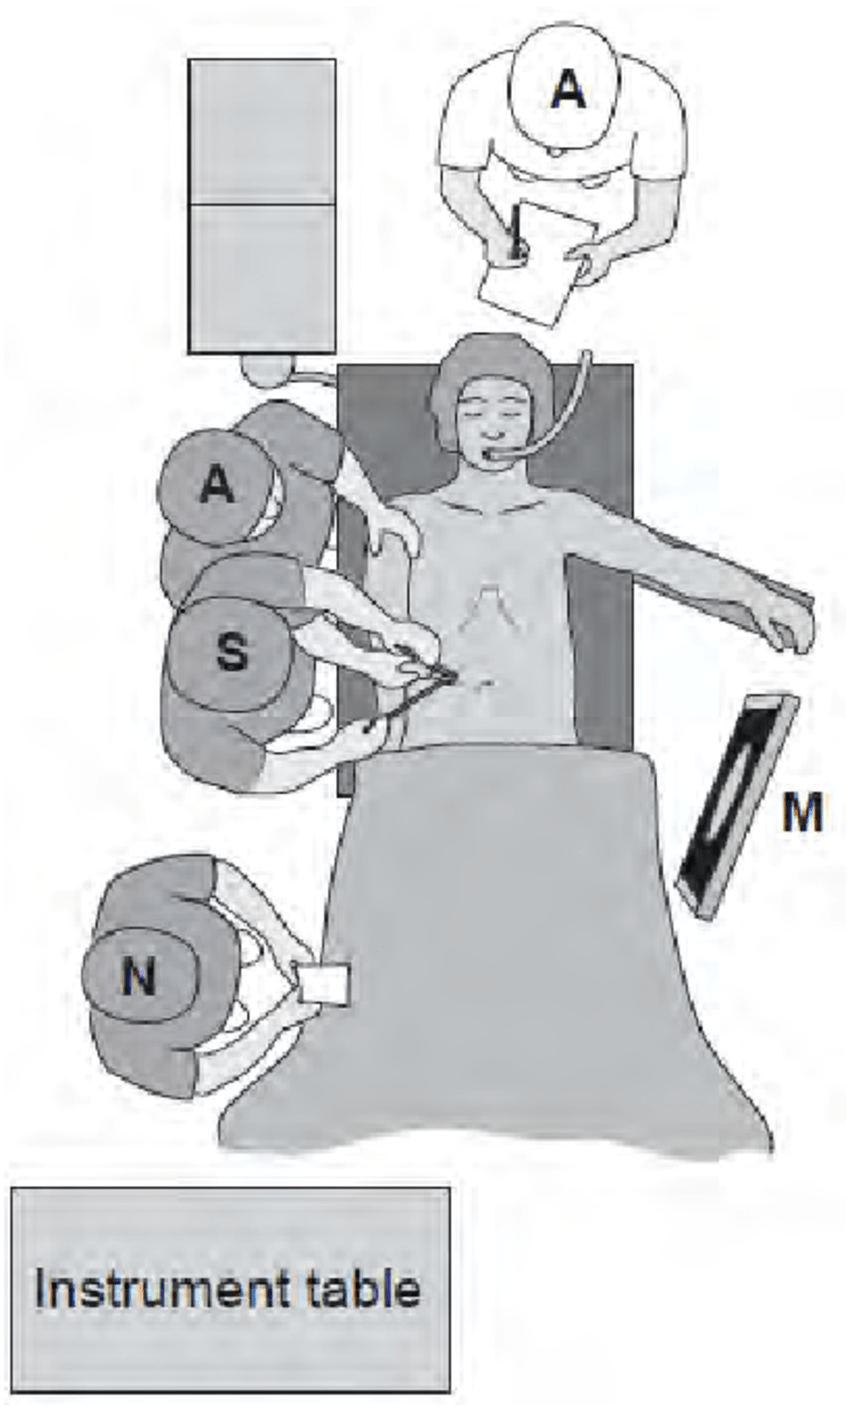 medium resolution of schematic view of operating room setup for low anterior resection